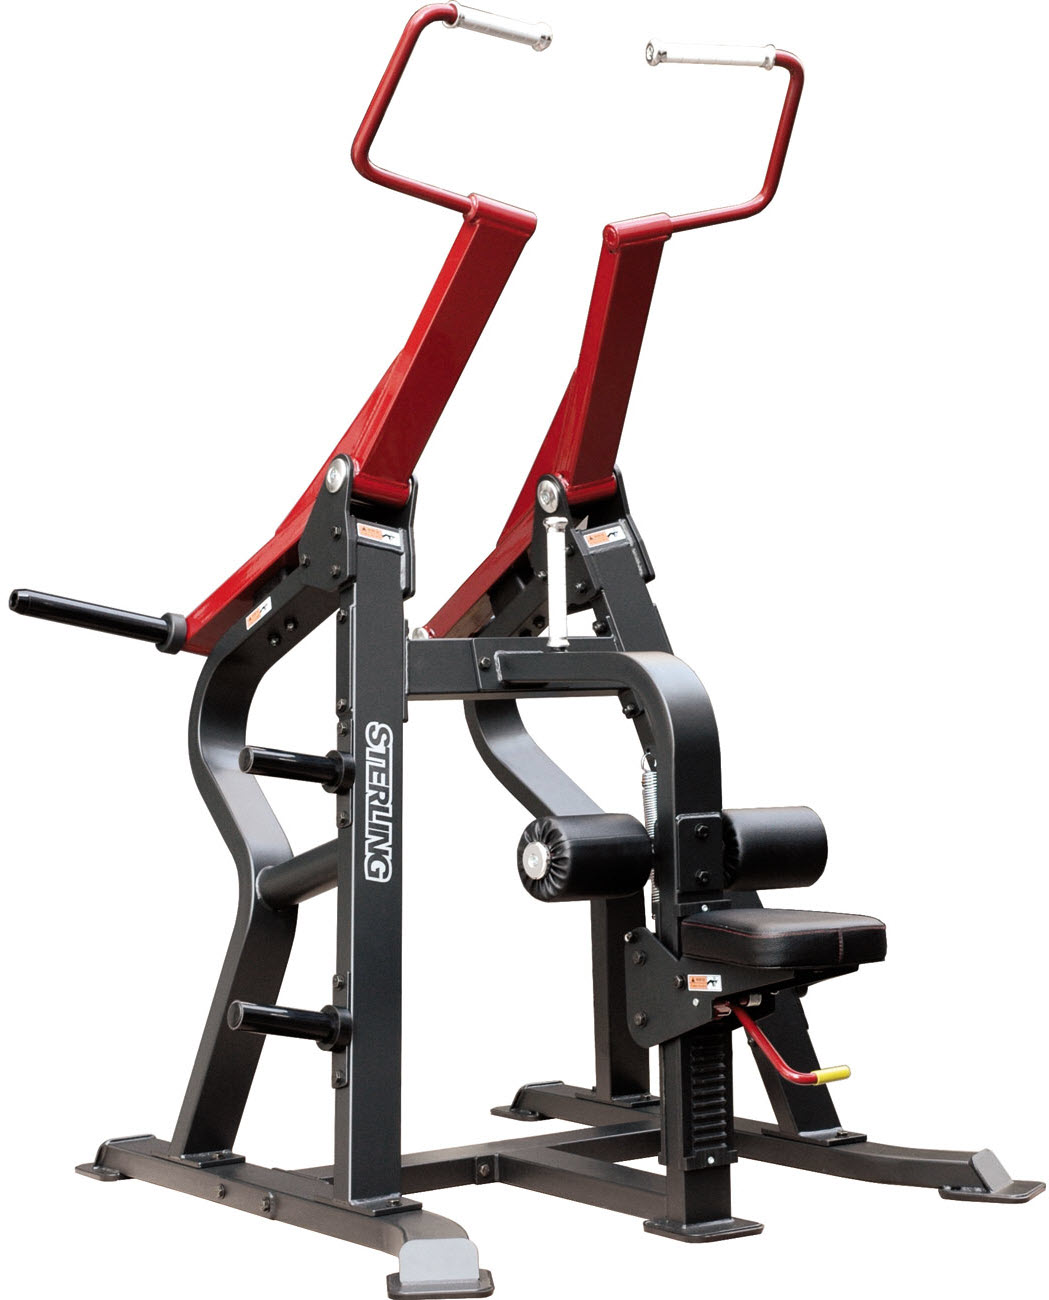 Lateral pulldown machine